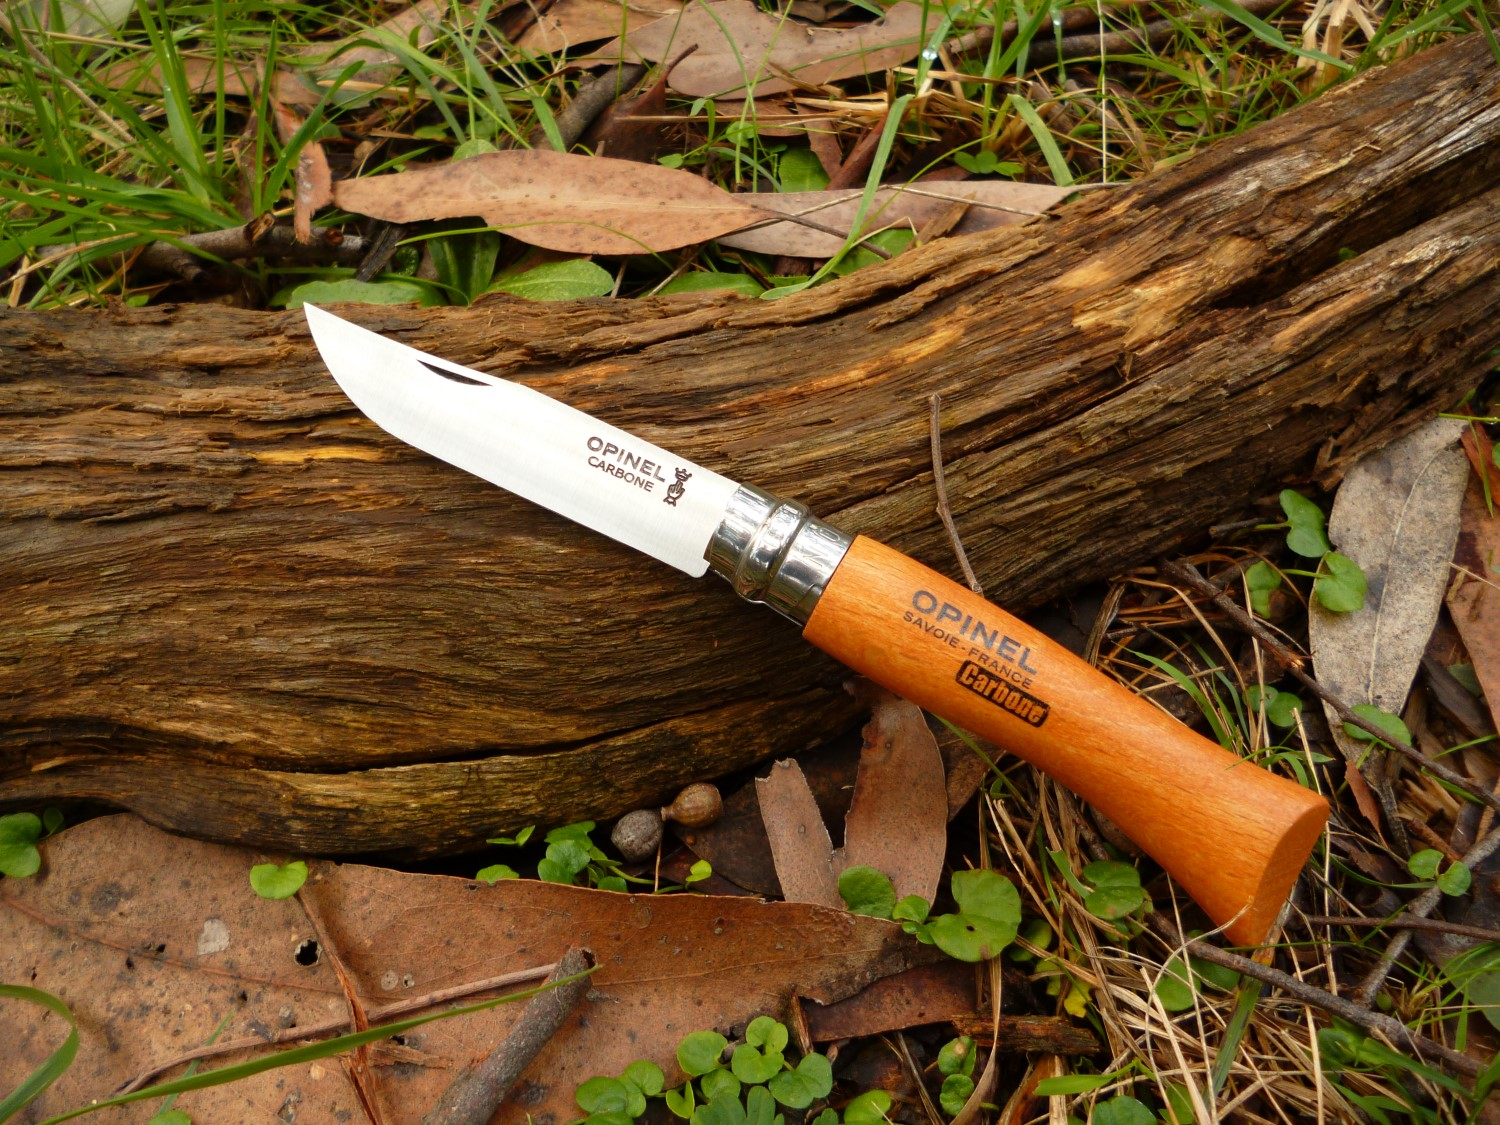 The rounded handle on the Opinel No. 7 is big enough to be comfortable in your hand.